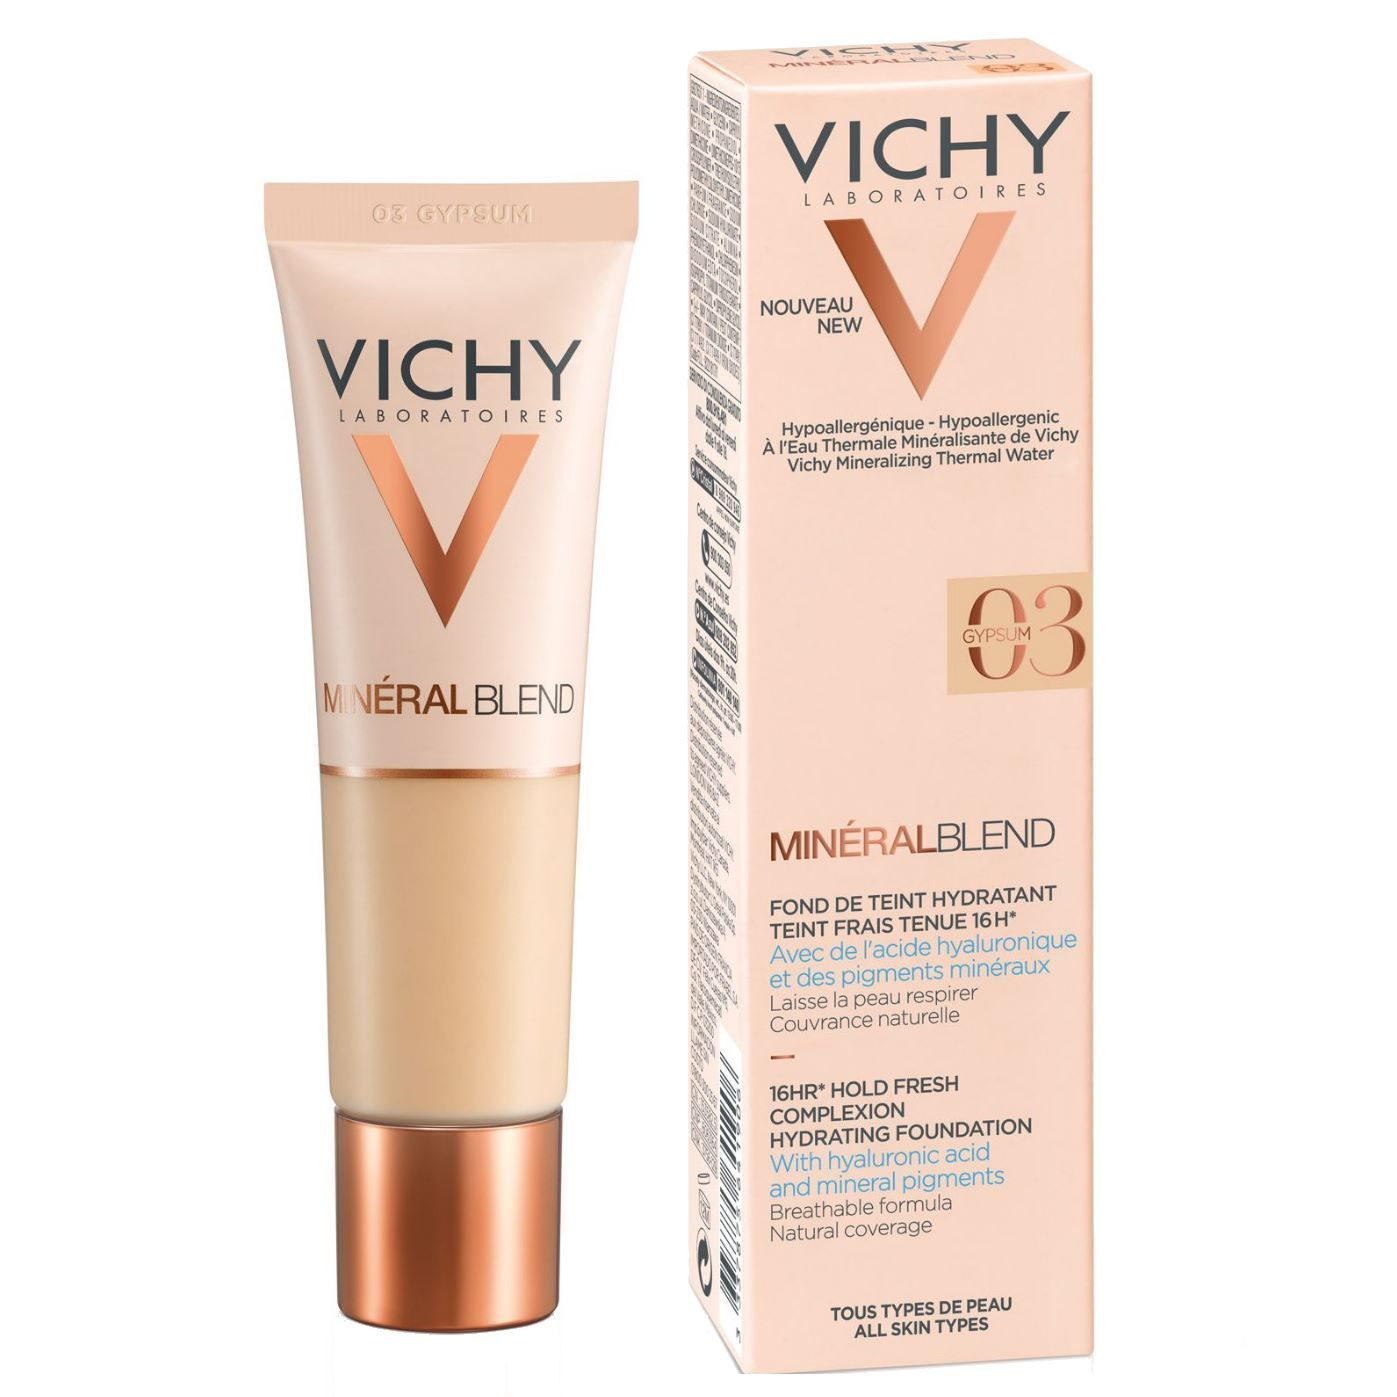 MineralBlend 16HR Hold Fresh Complexion Hydrating Foundation